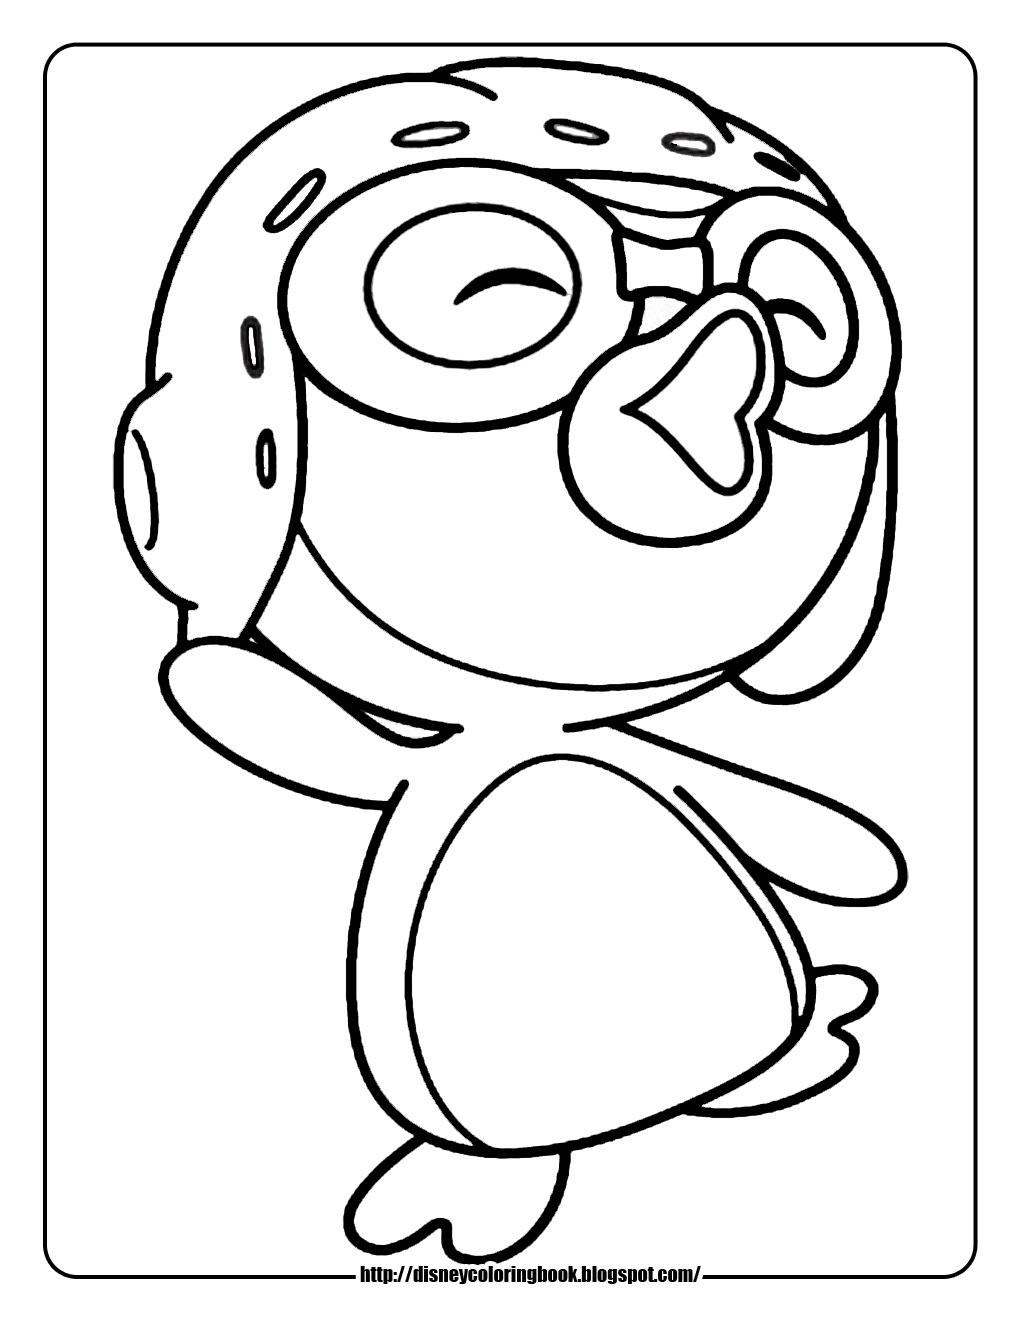 penguin picture to color penguin coloring pages minister coloring picture penguin to color